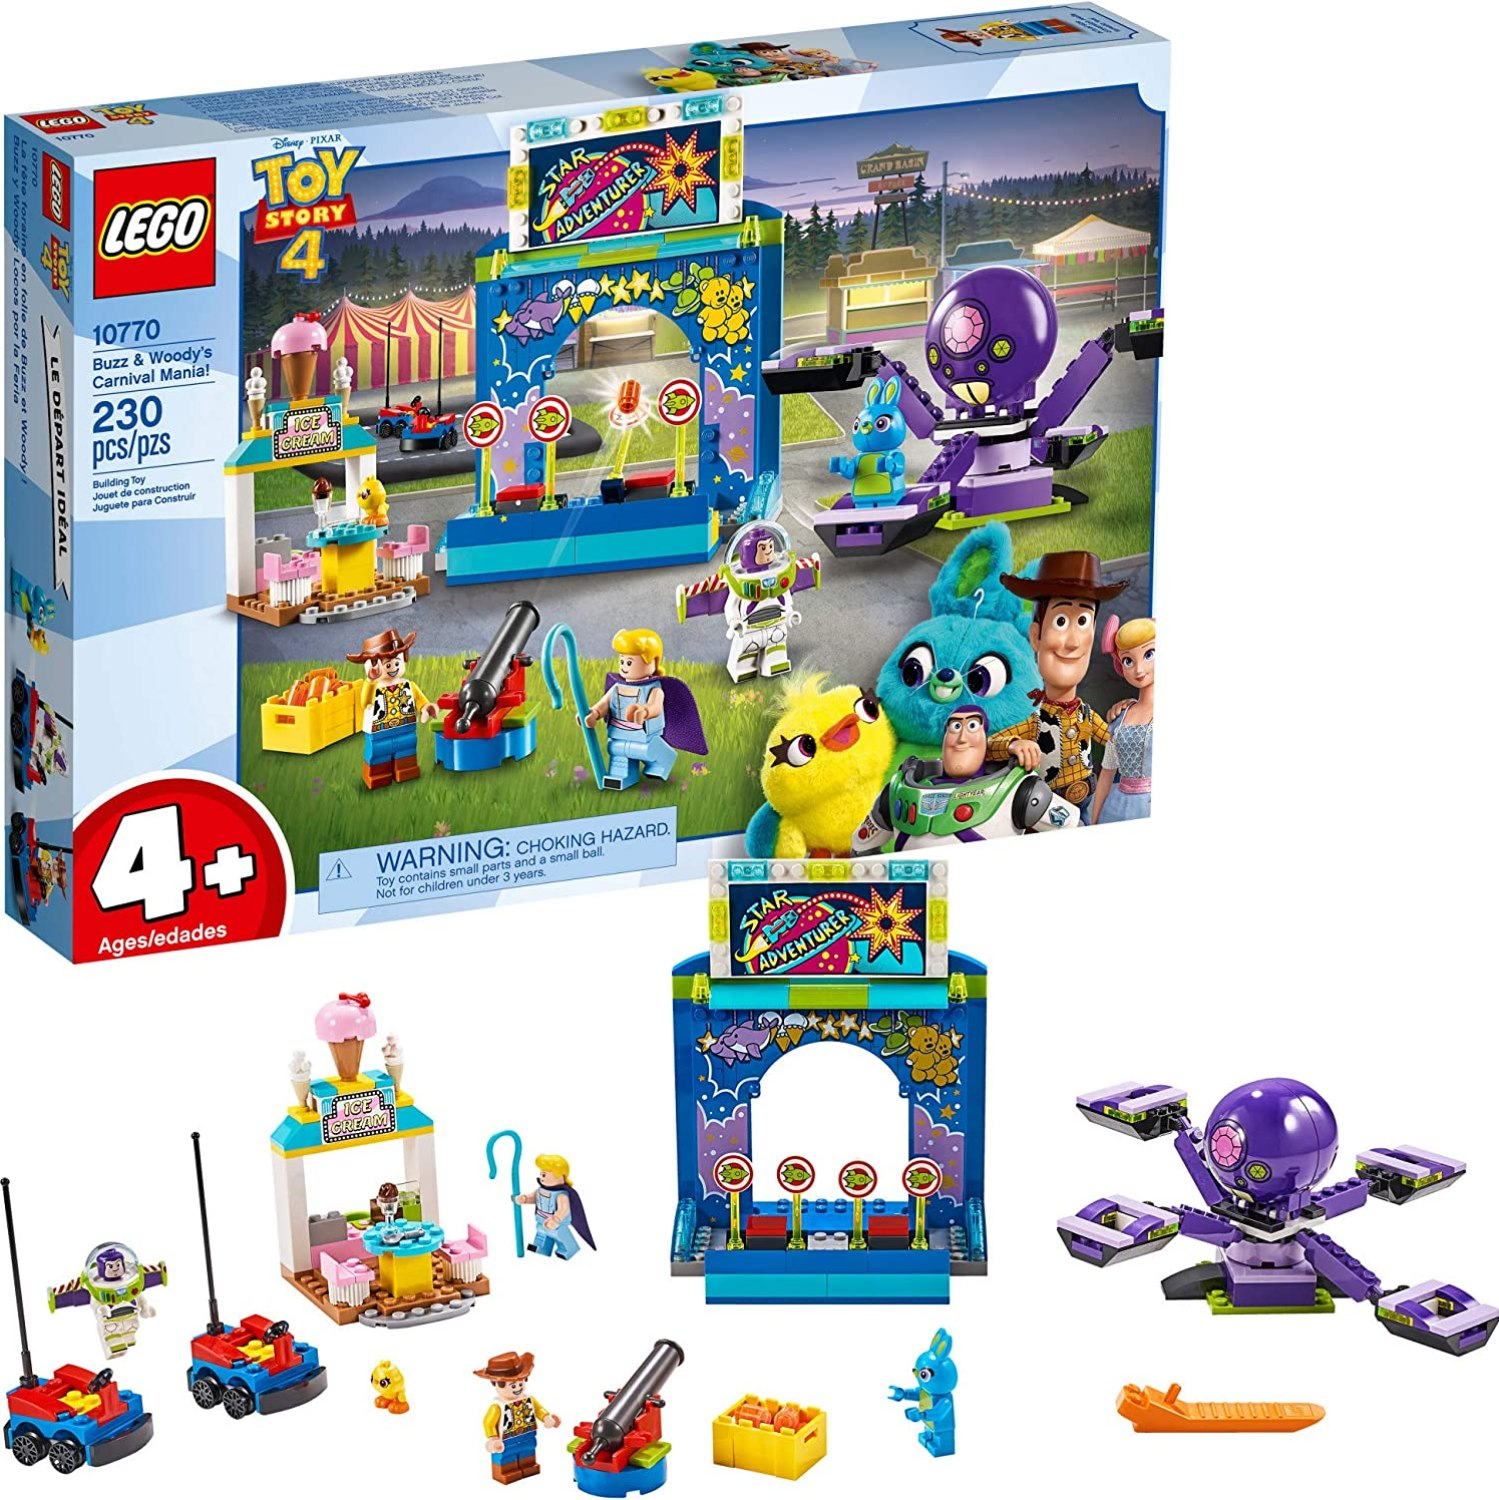 LEGO Disney Pixar's Toy Story 4 Buzz Lightyear & Woody's Carnival Mania 10770 Building Kit, Carnival Playset with Shooting Game & Toy Story Characters (230 Pieces)